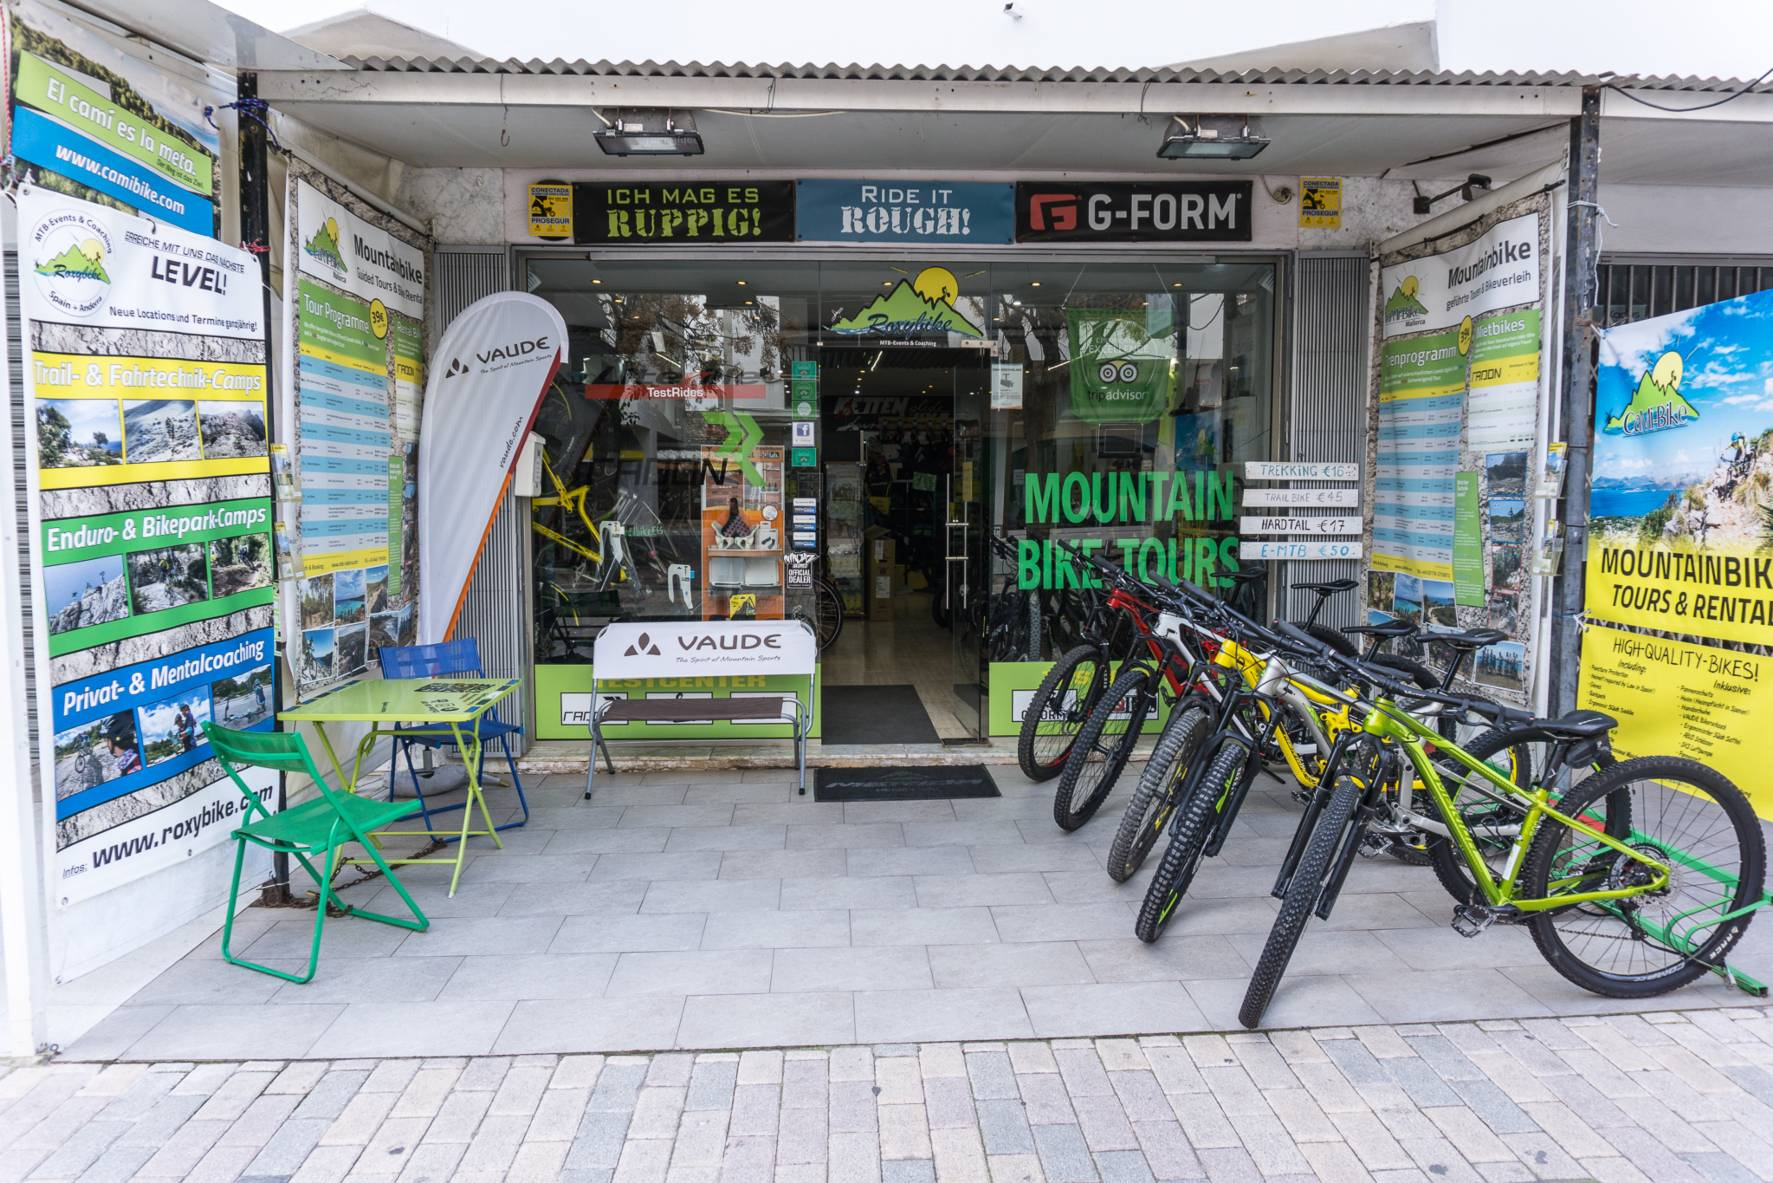 Contact the Bike Station CaMi-Bike in Cala Millor